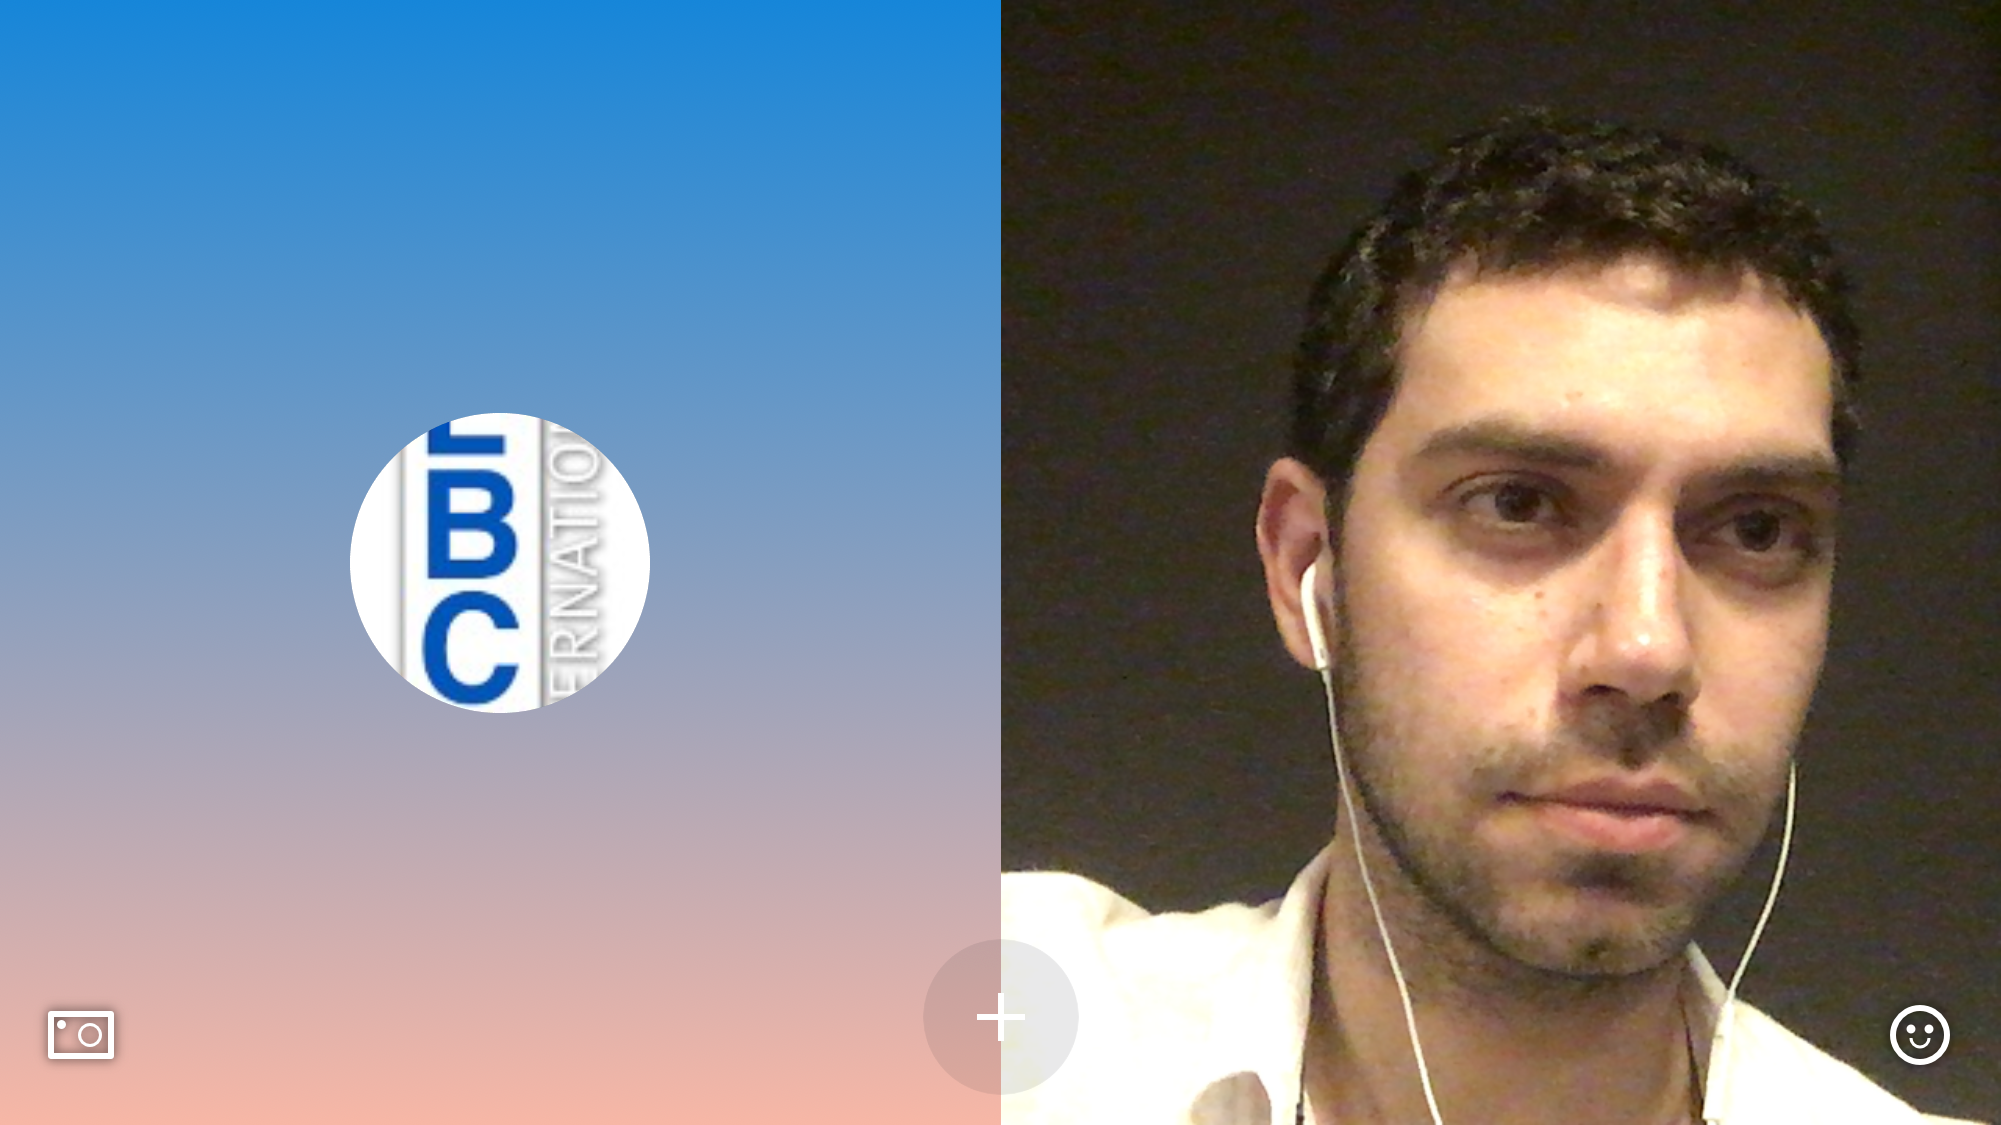 Screenshot during the Skype interview on LBCI - May 16, 2018